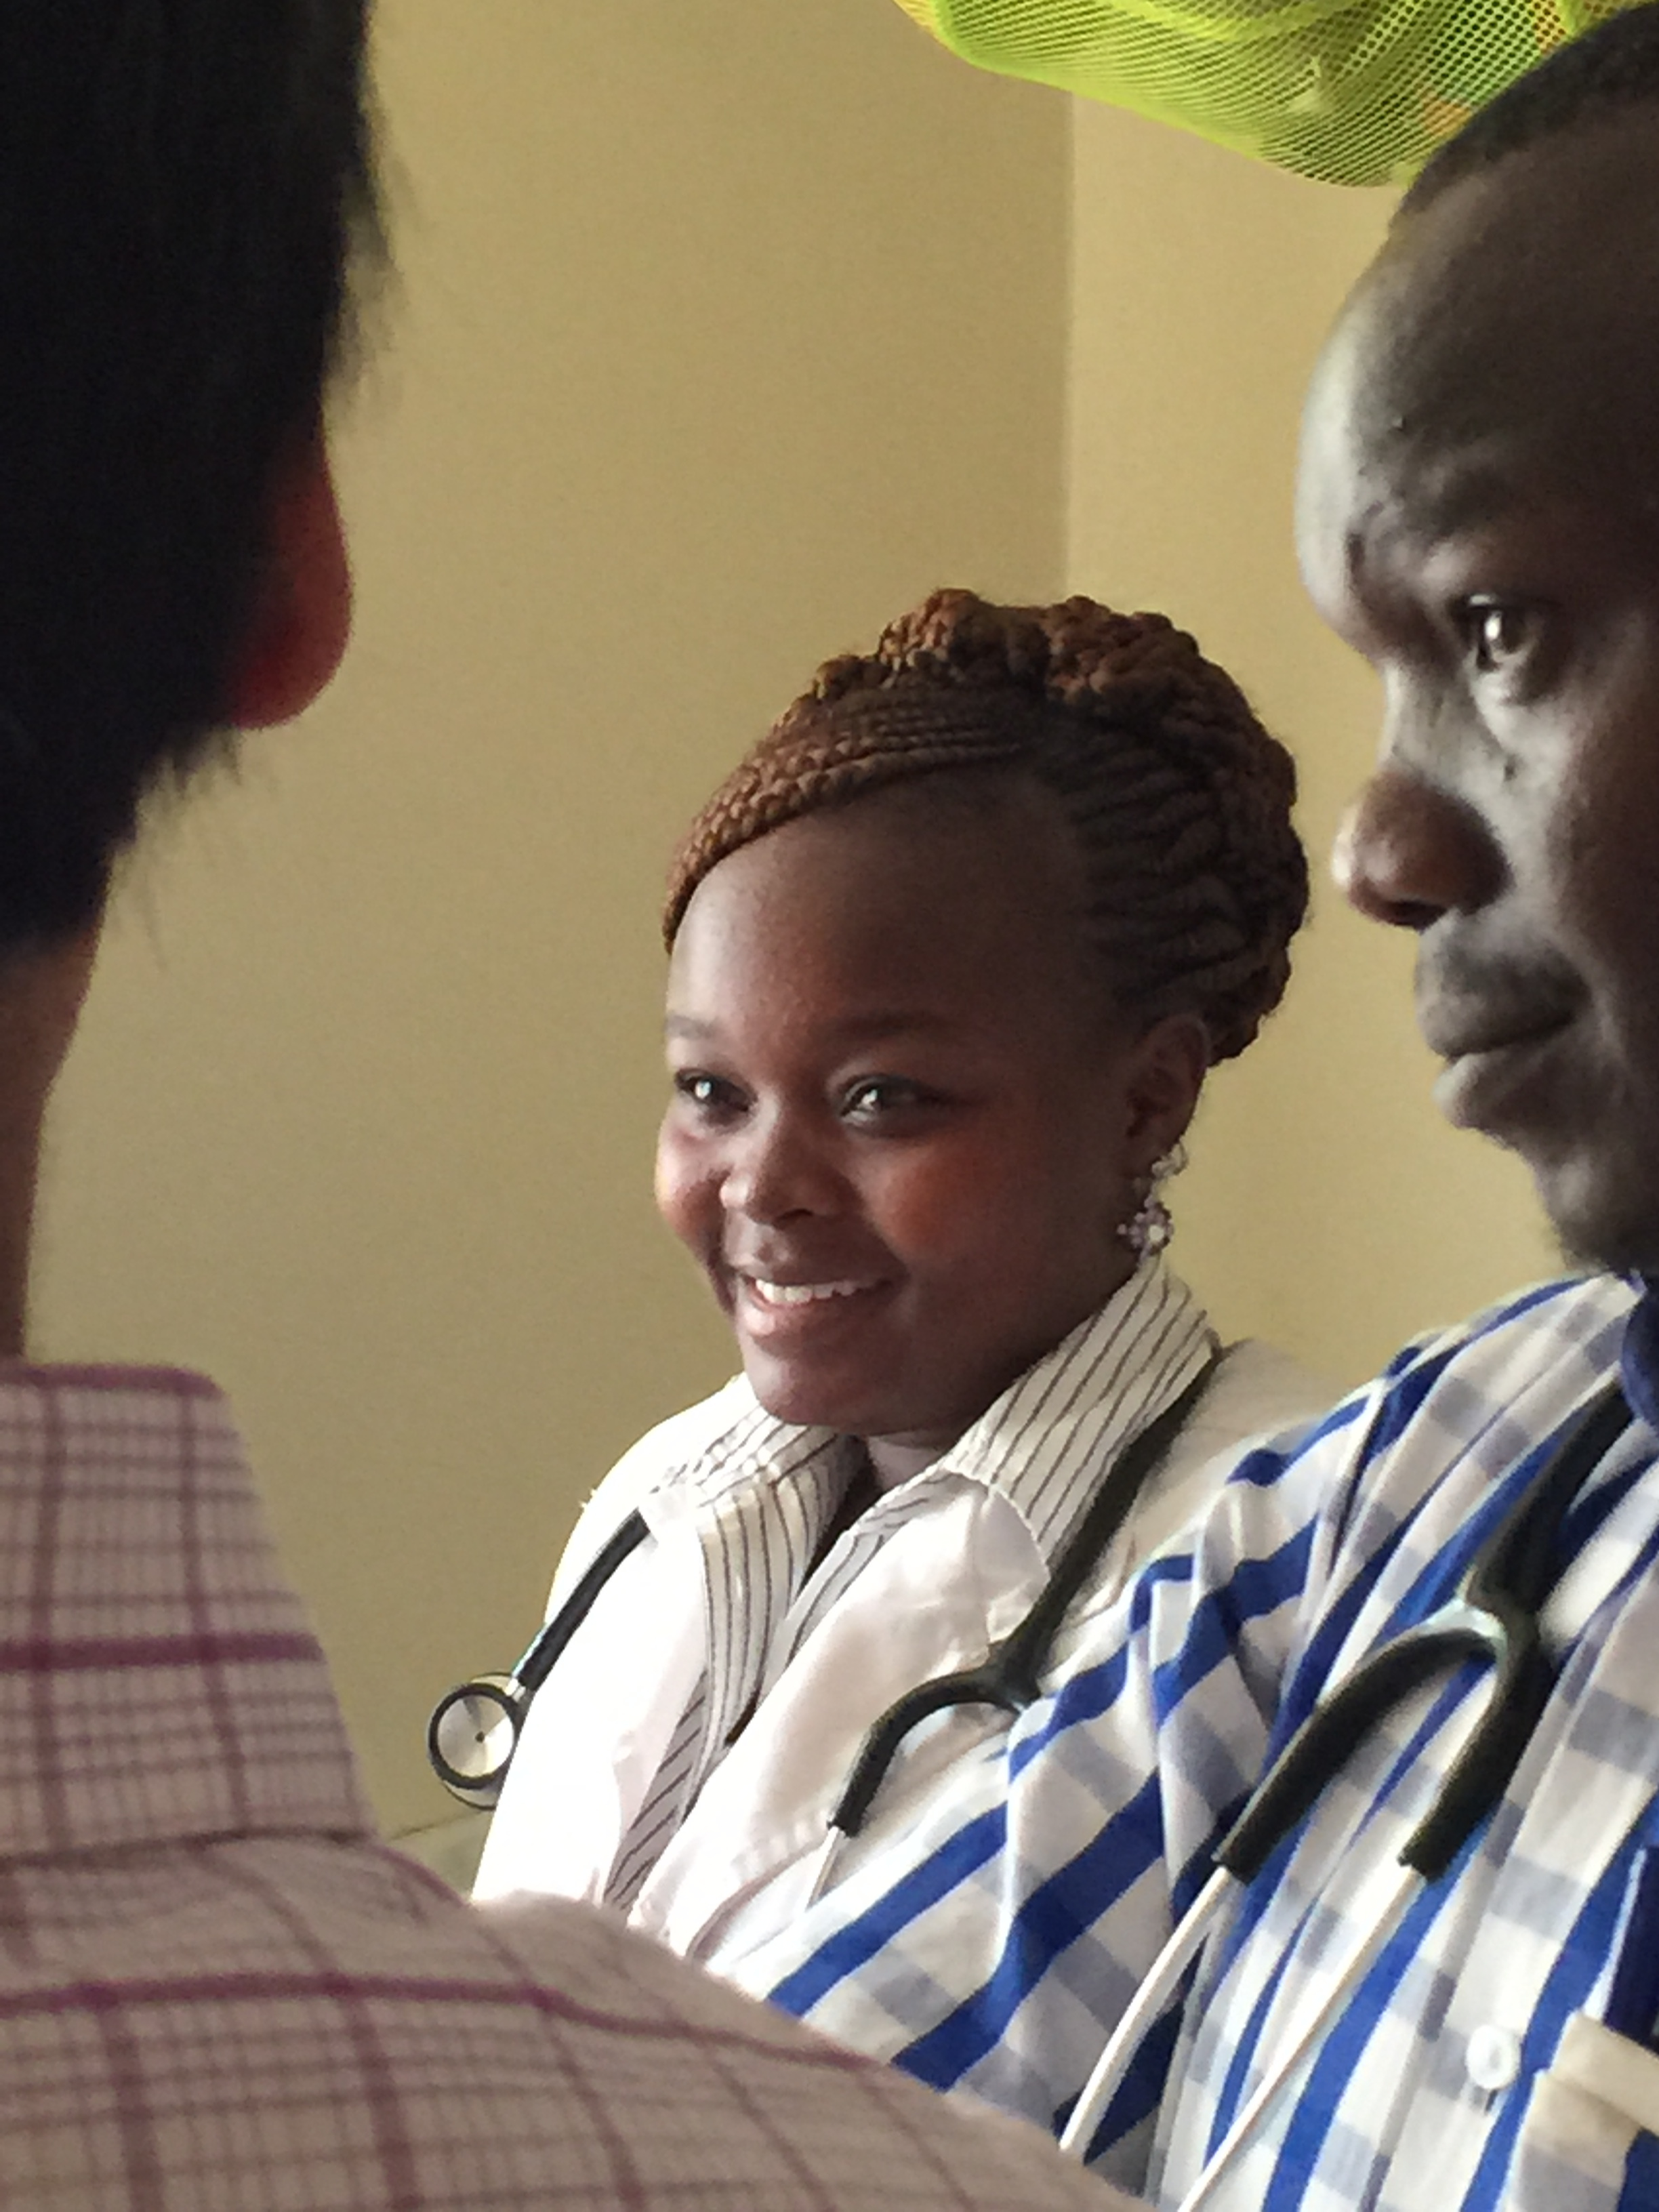 Rahema, a clinical officer at the clinic, during our first day of rounds.